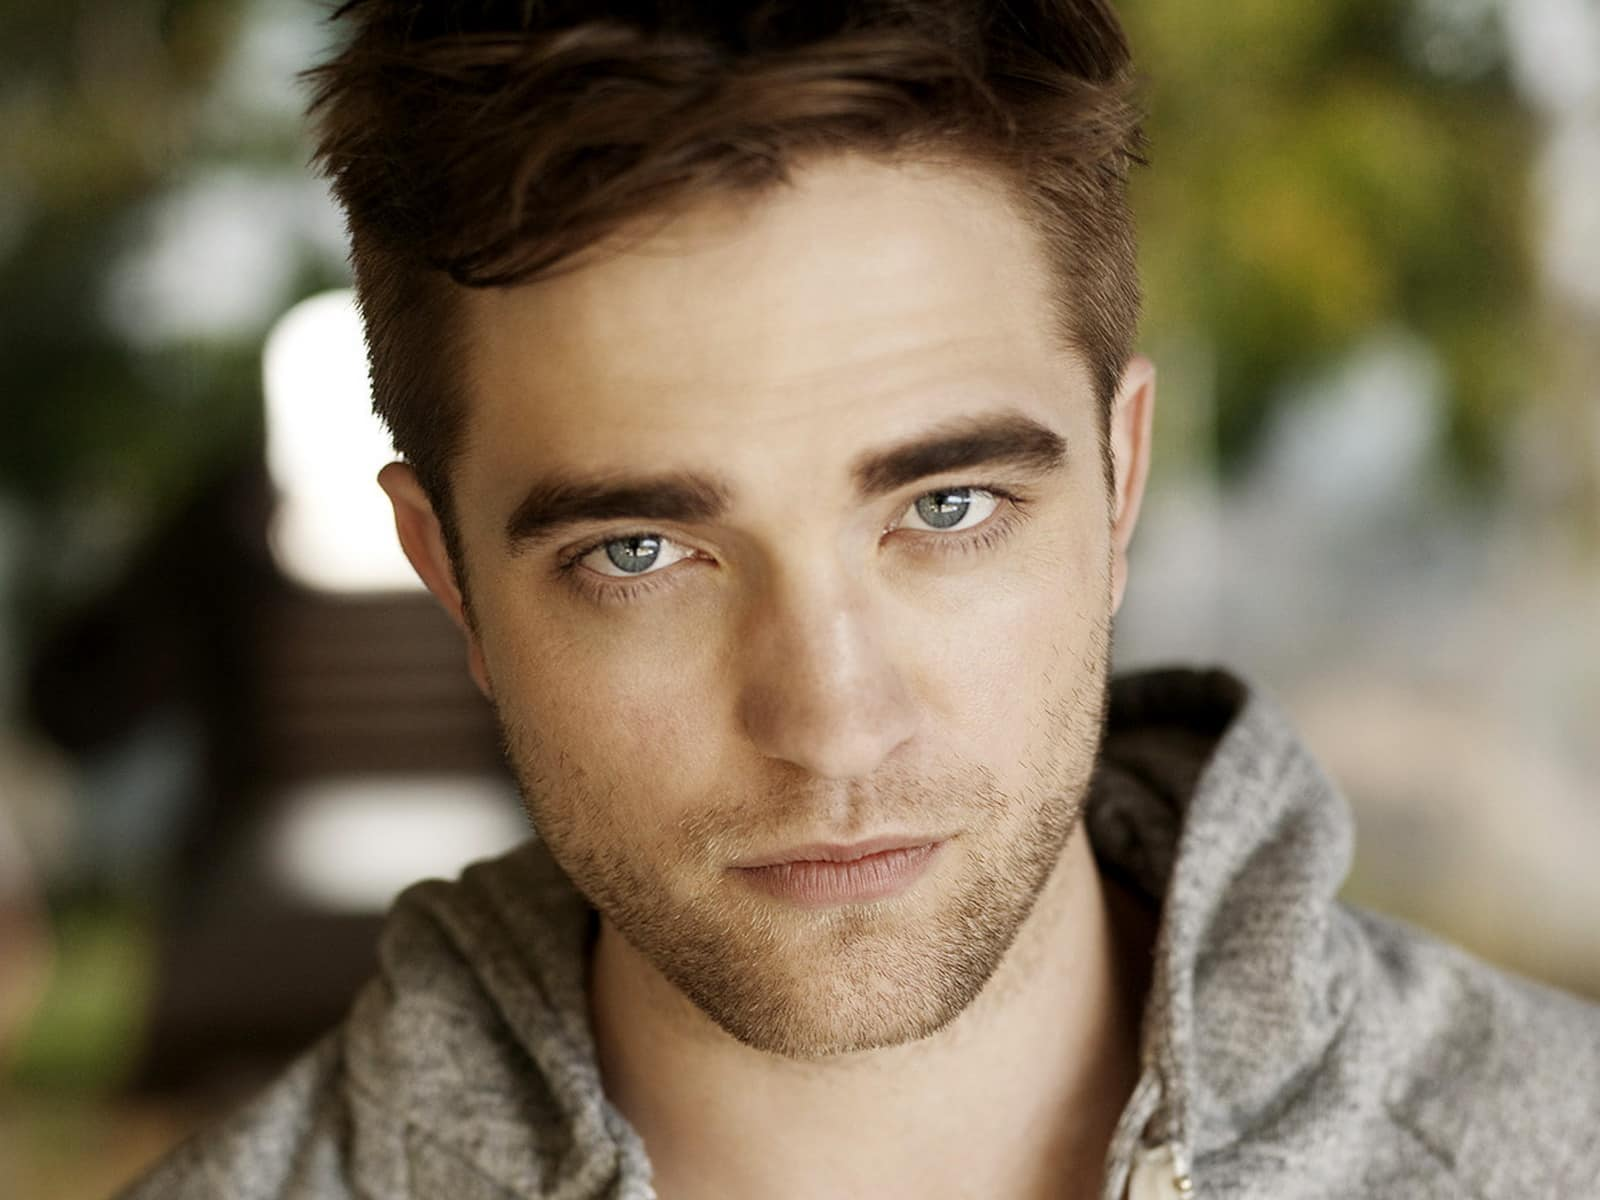 Robert Pattinson to star in a sci-fi movie